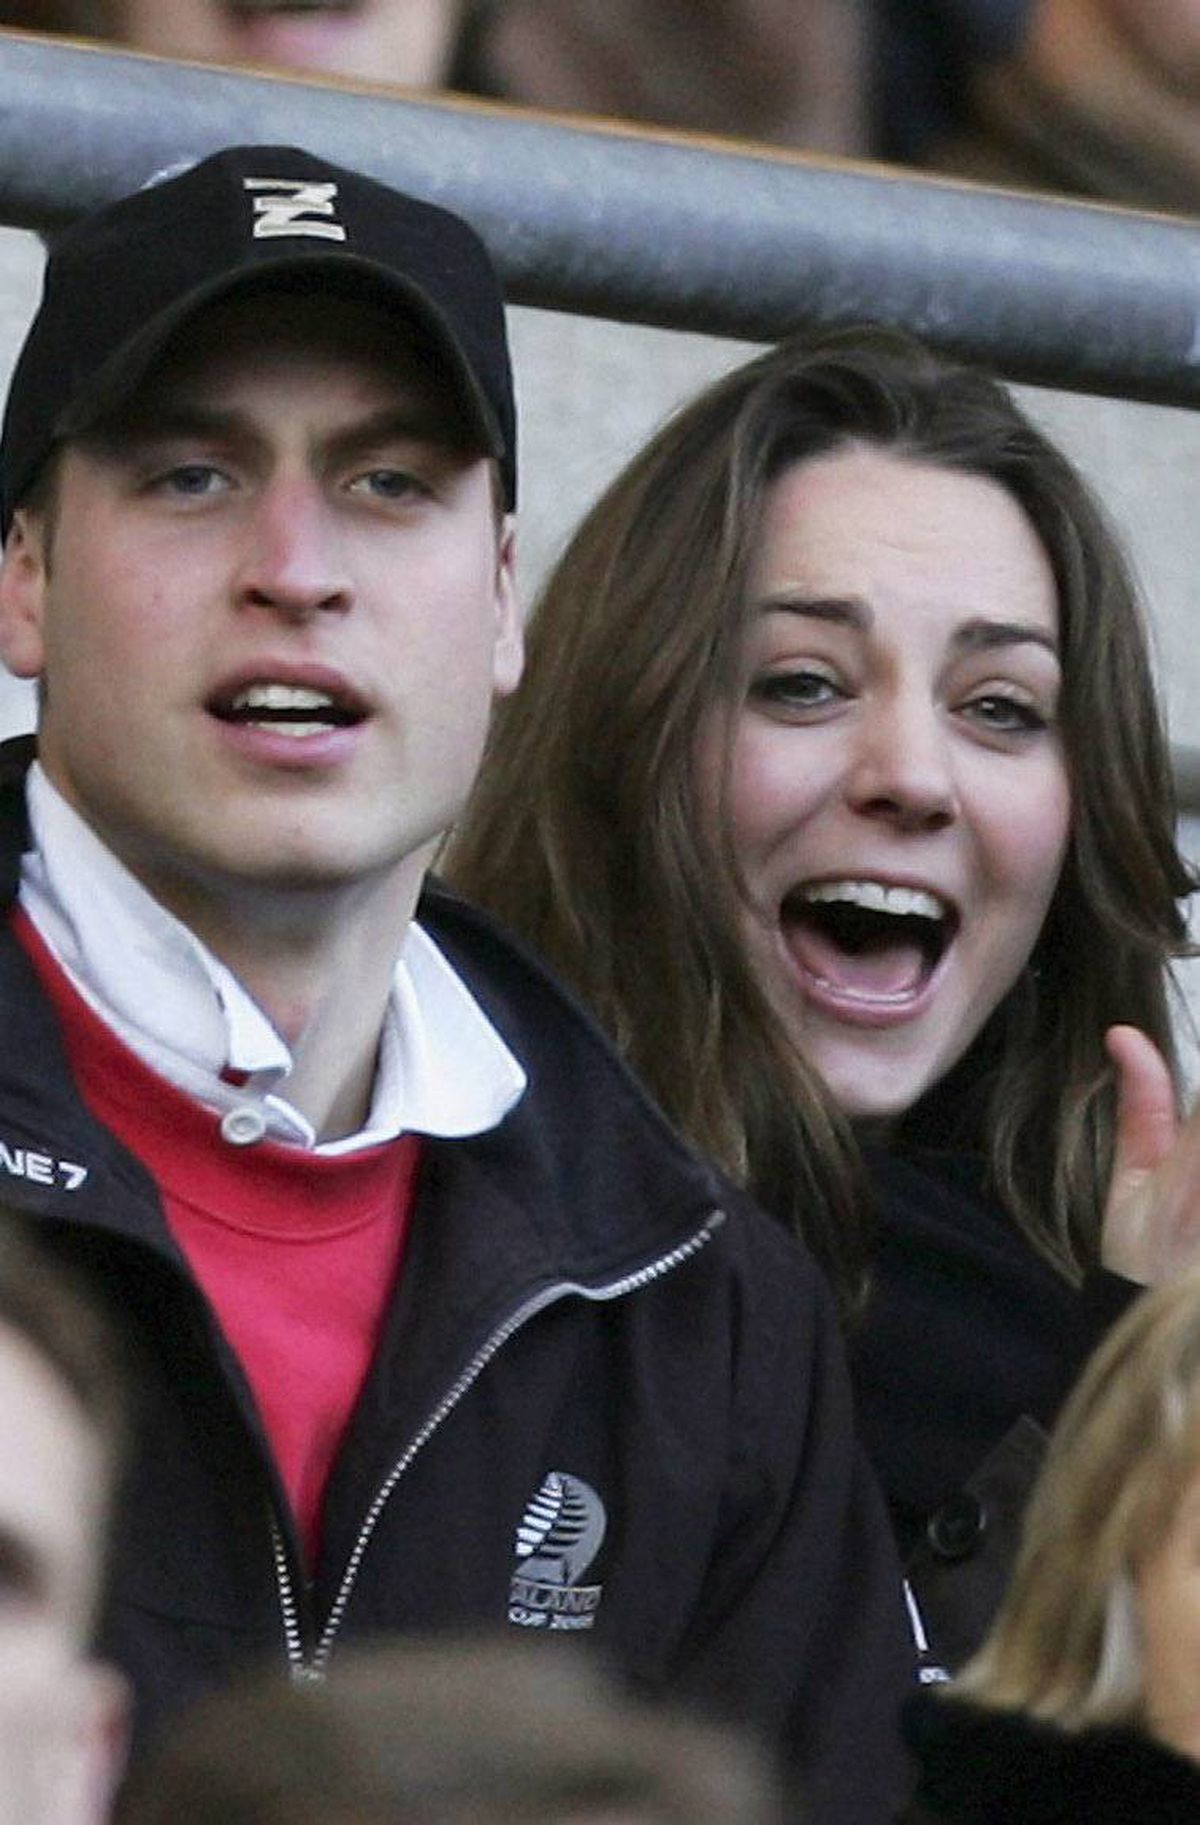 Prince William and Kate Middleton cheer on the English team during the RBS Six Nations Championship match between England and Italy at Twickenham on February 10, 2007 in London, England.